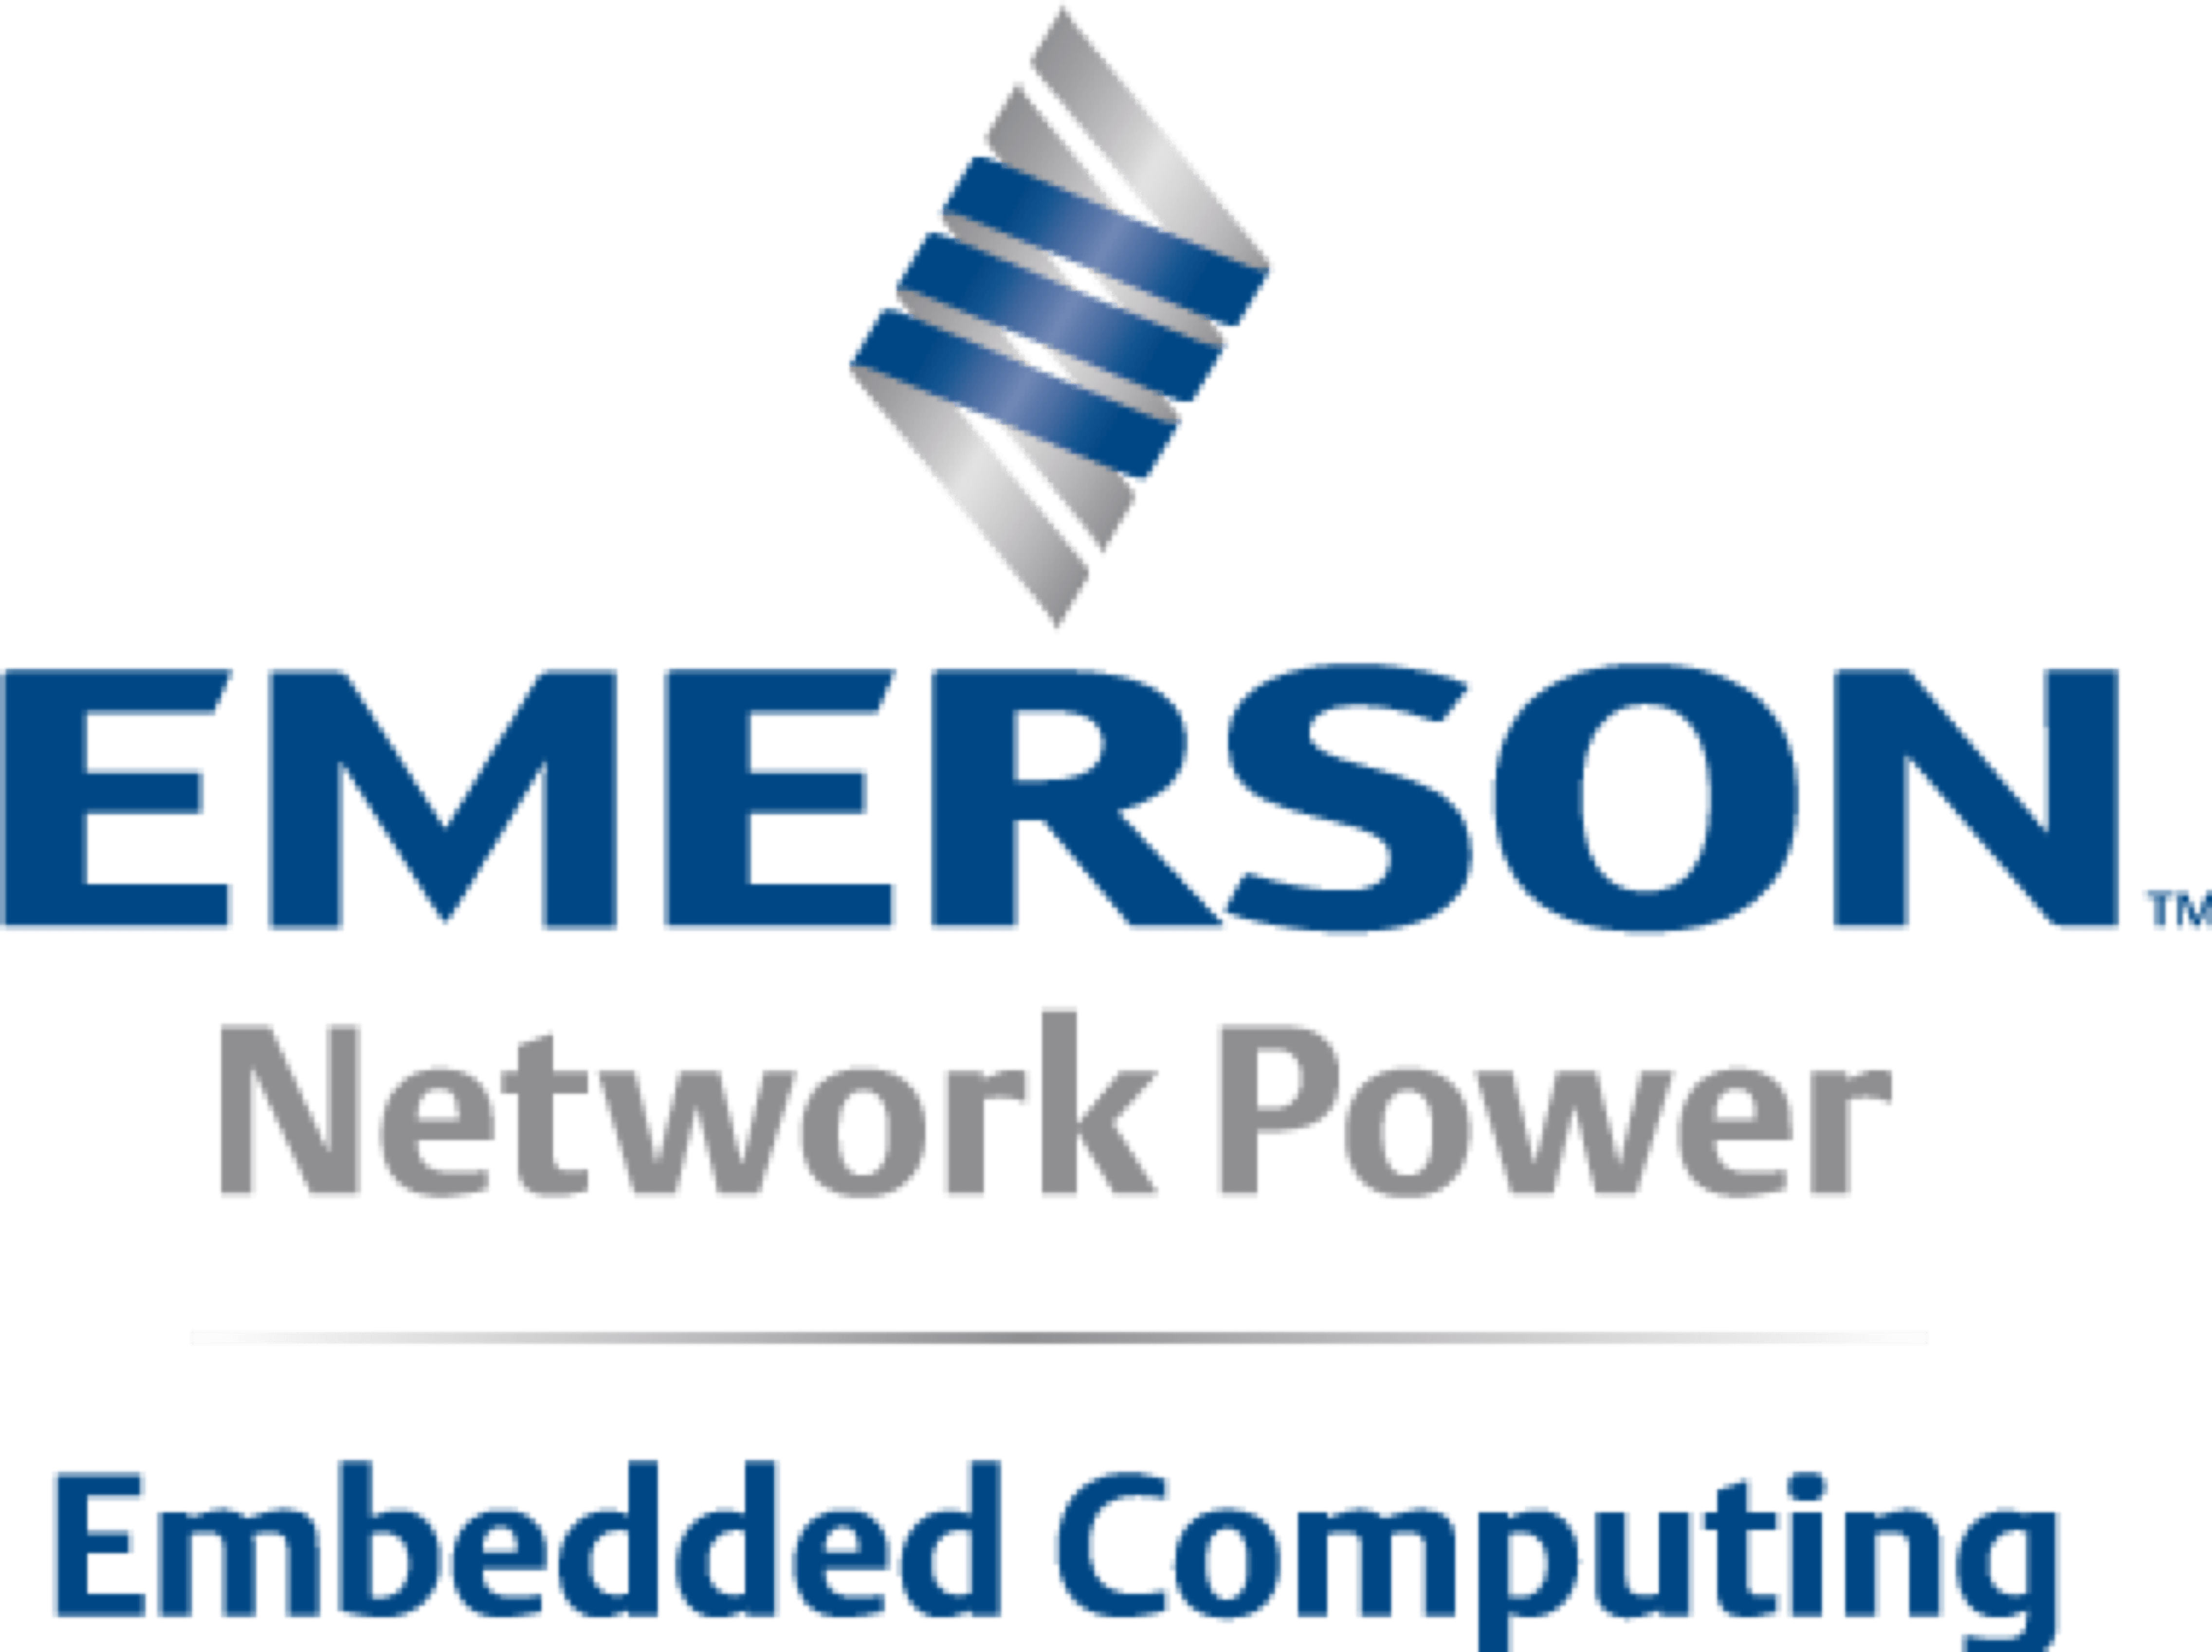 Emerson-Embedded-Computing-Website-Design-Logo